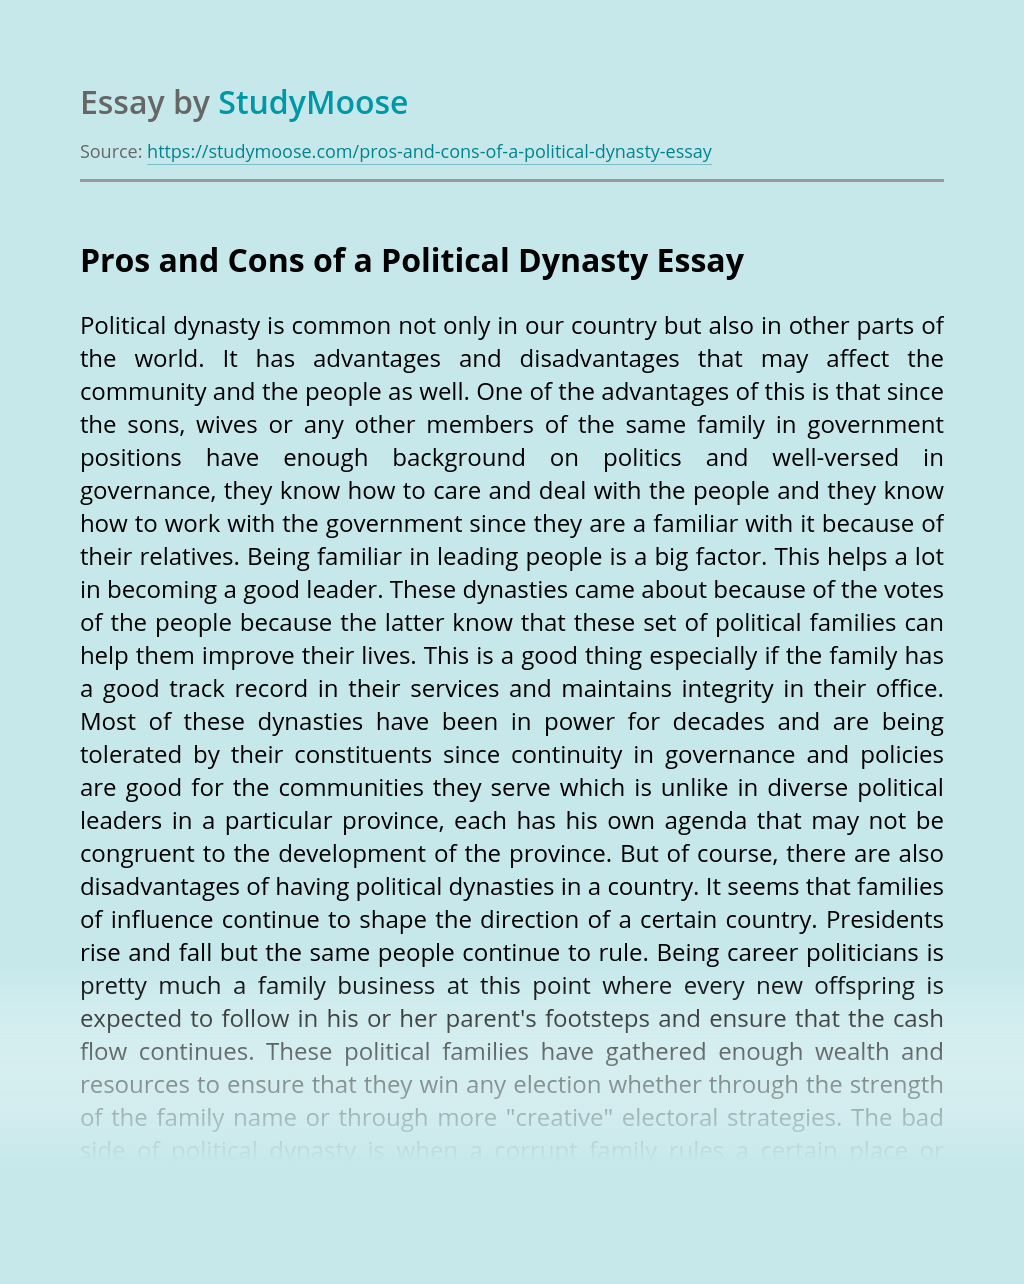 Pros and Cons of a Political Dynasty